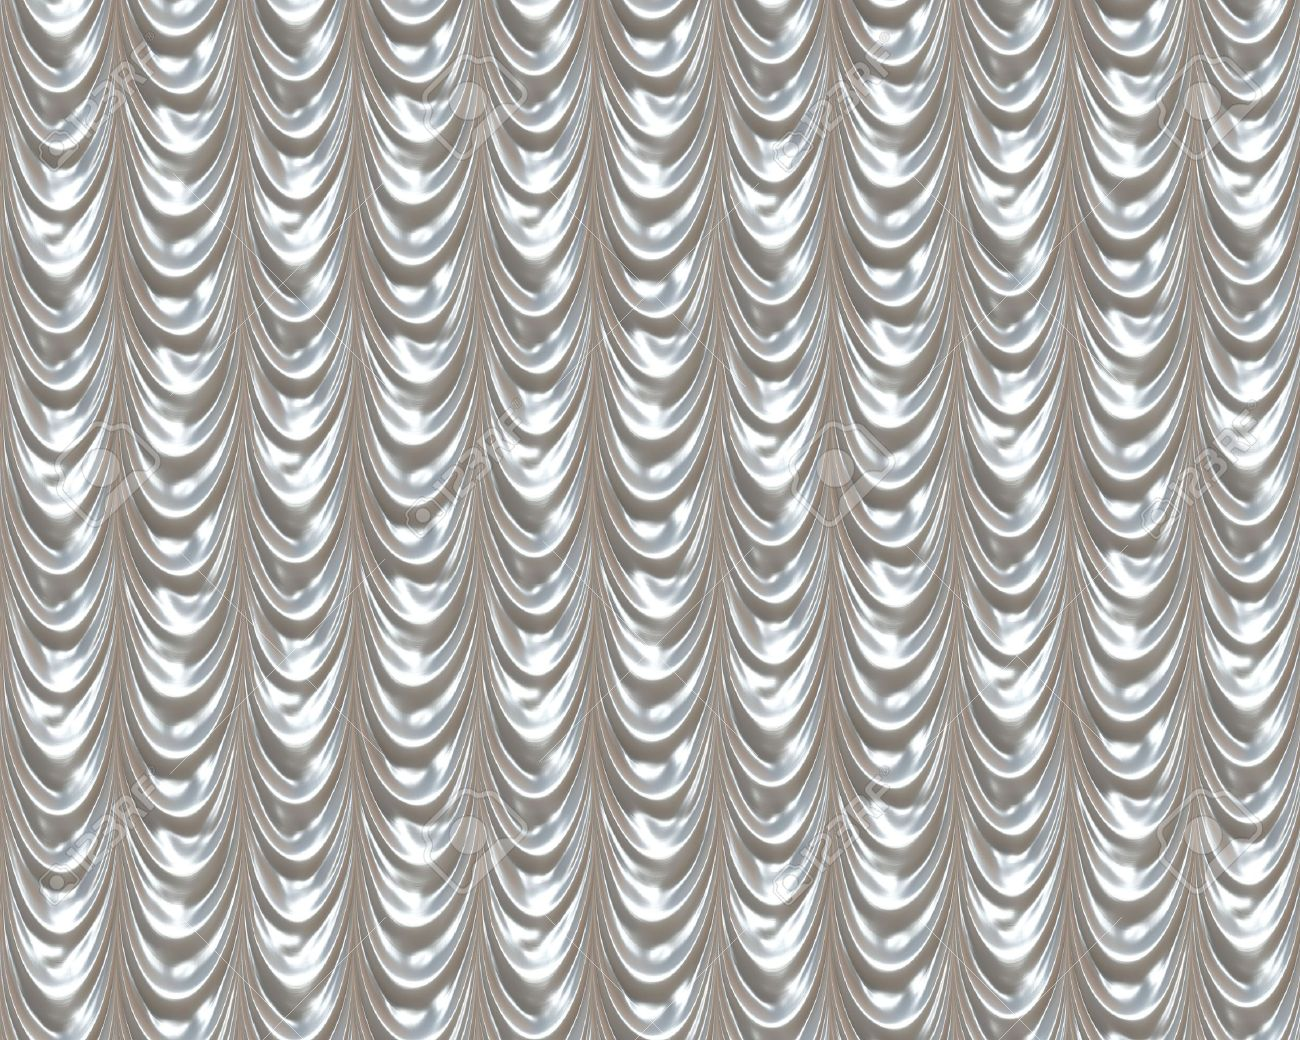 White curtain texture - A Silver Curtain Background Creased Silky Cloth Stock Photo 9396851